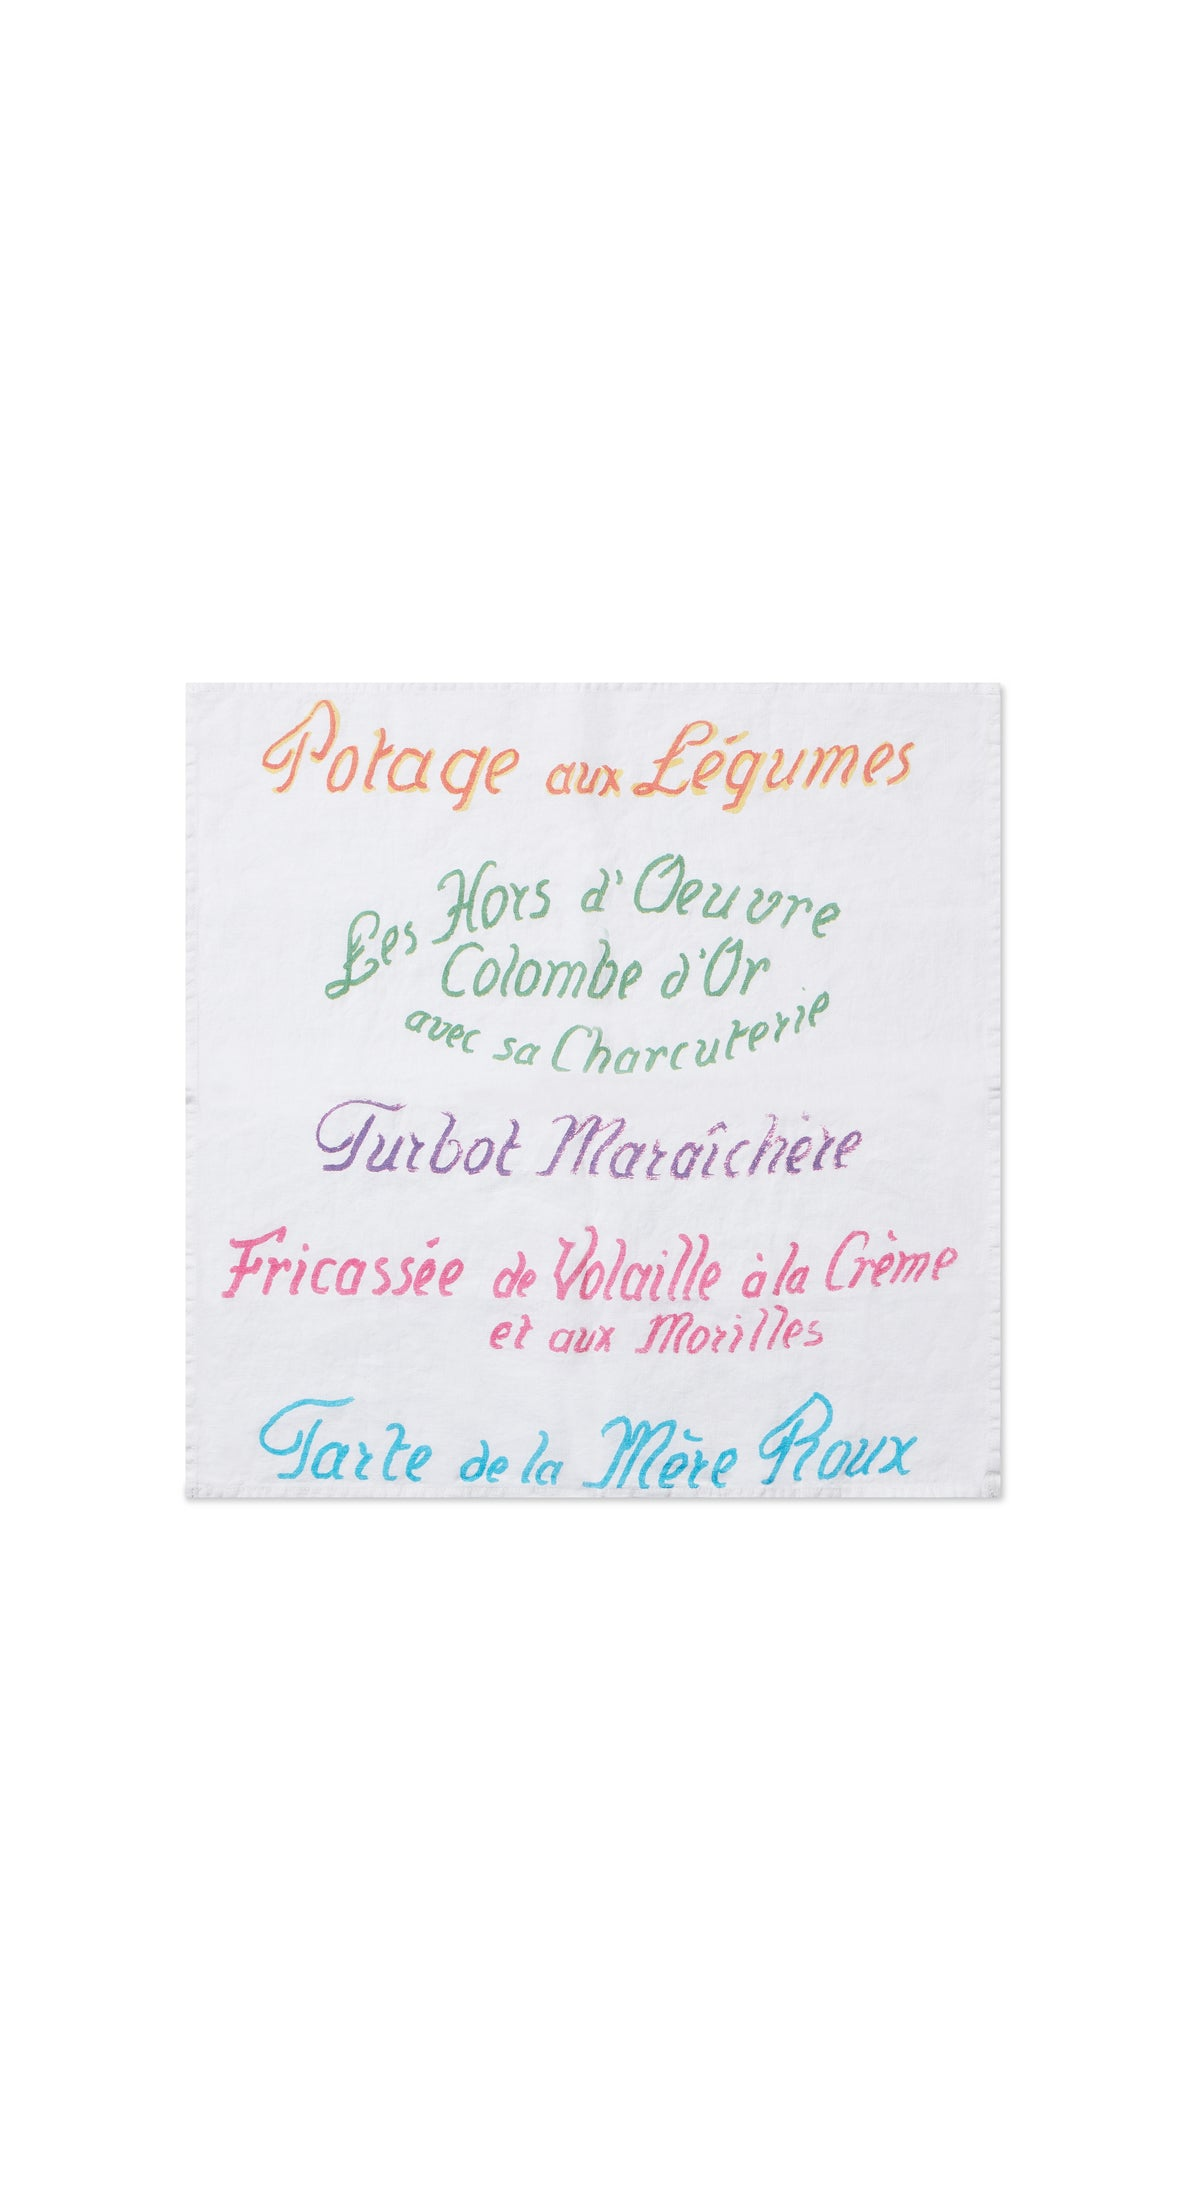 25th Anniversary 'Le Menu' S&B x La Colombe d'Or Linen Napkins, Set of Two